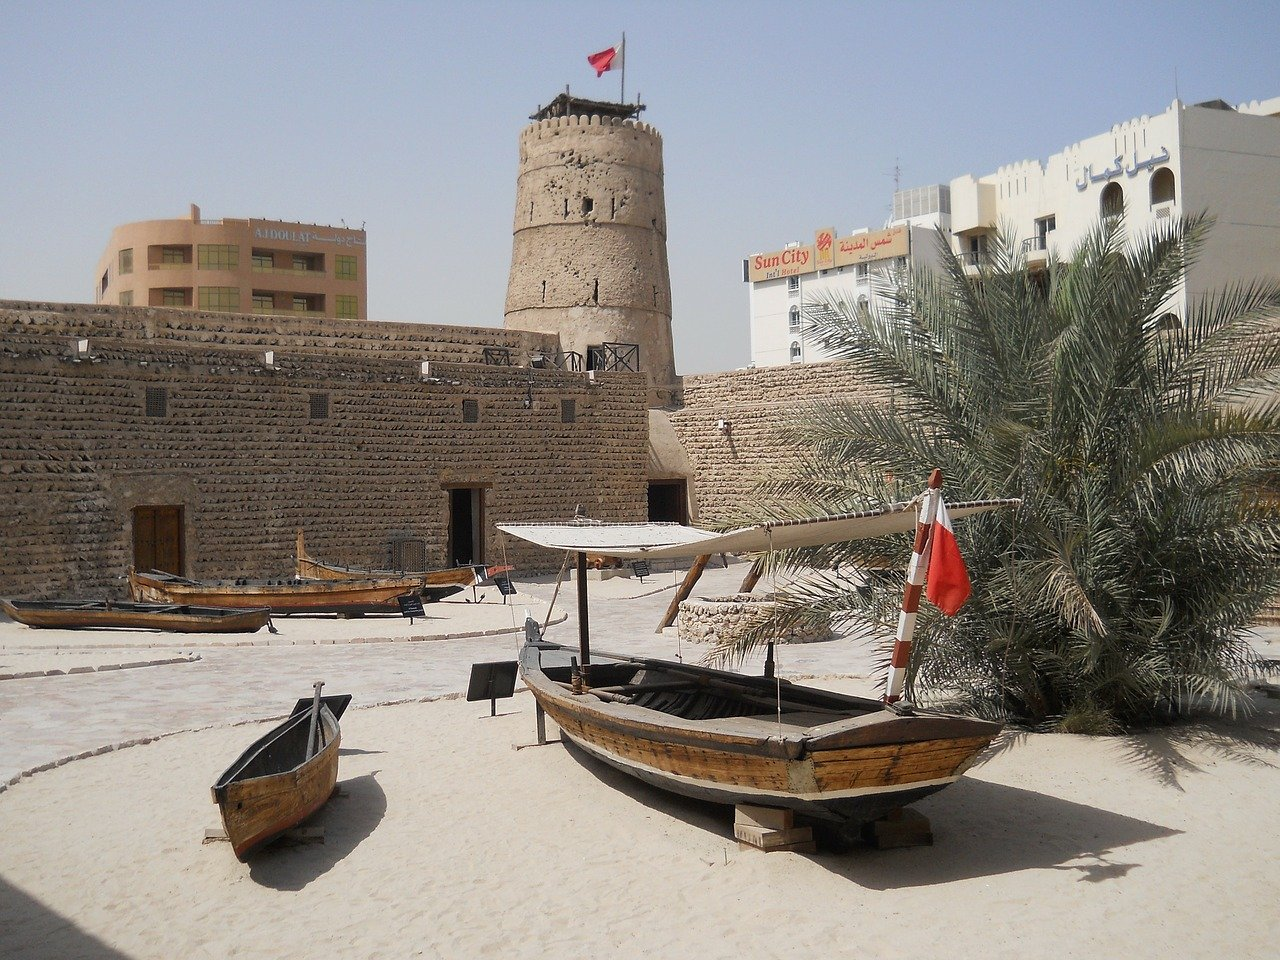 Dubai Museum is one of the best museums in Dubai you have to include on your Dubai itinerary